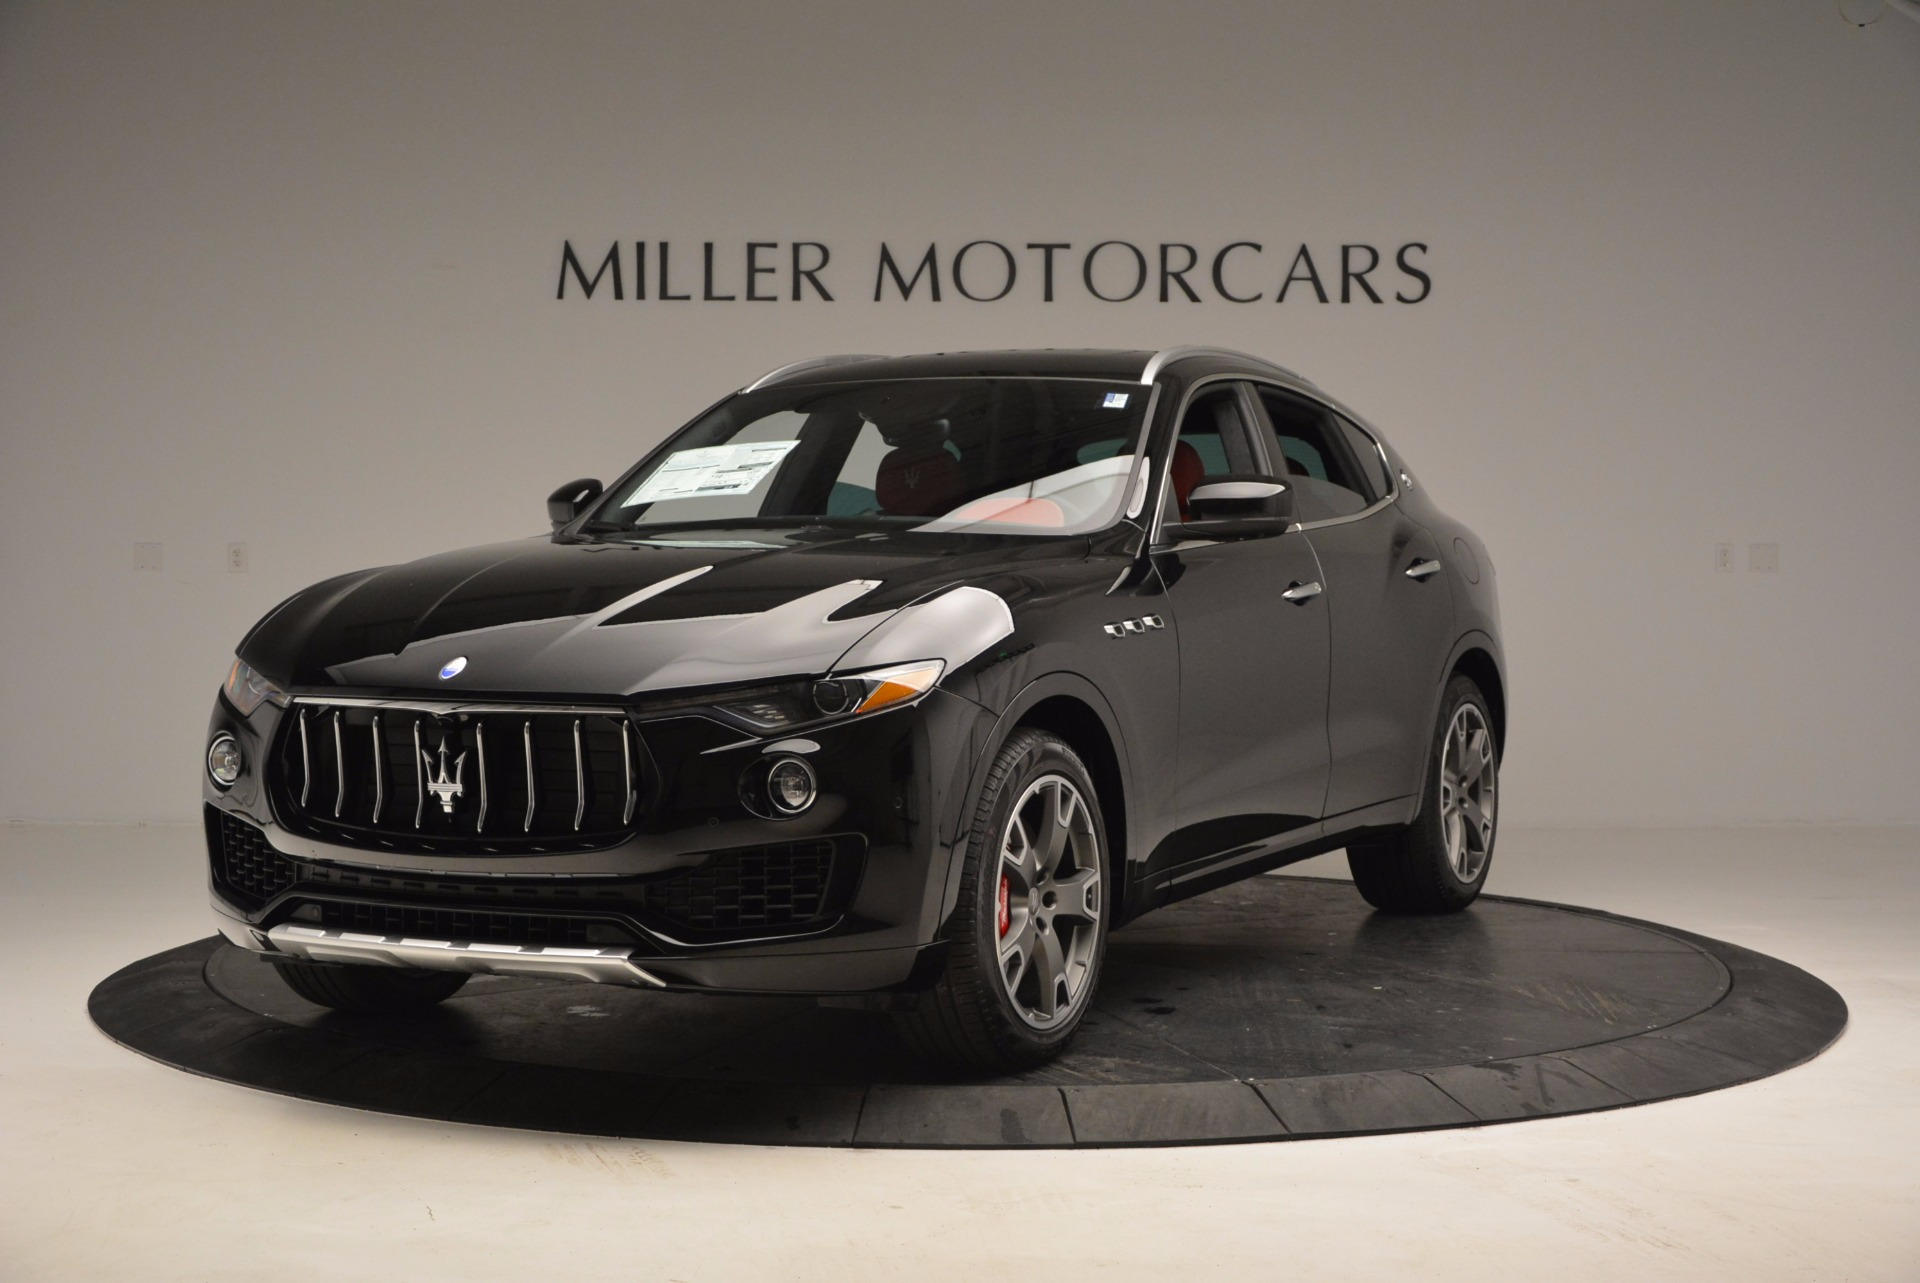 New 2017 Maserati Levante S Zegna Edition For Sale In Westport, CT 840_main